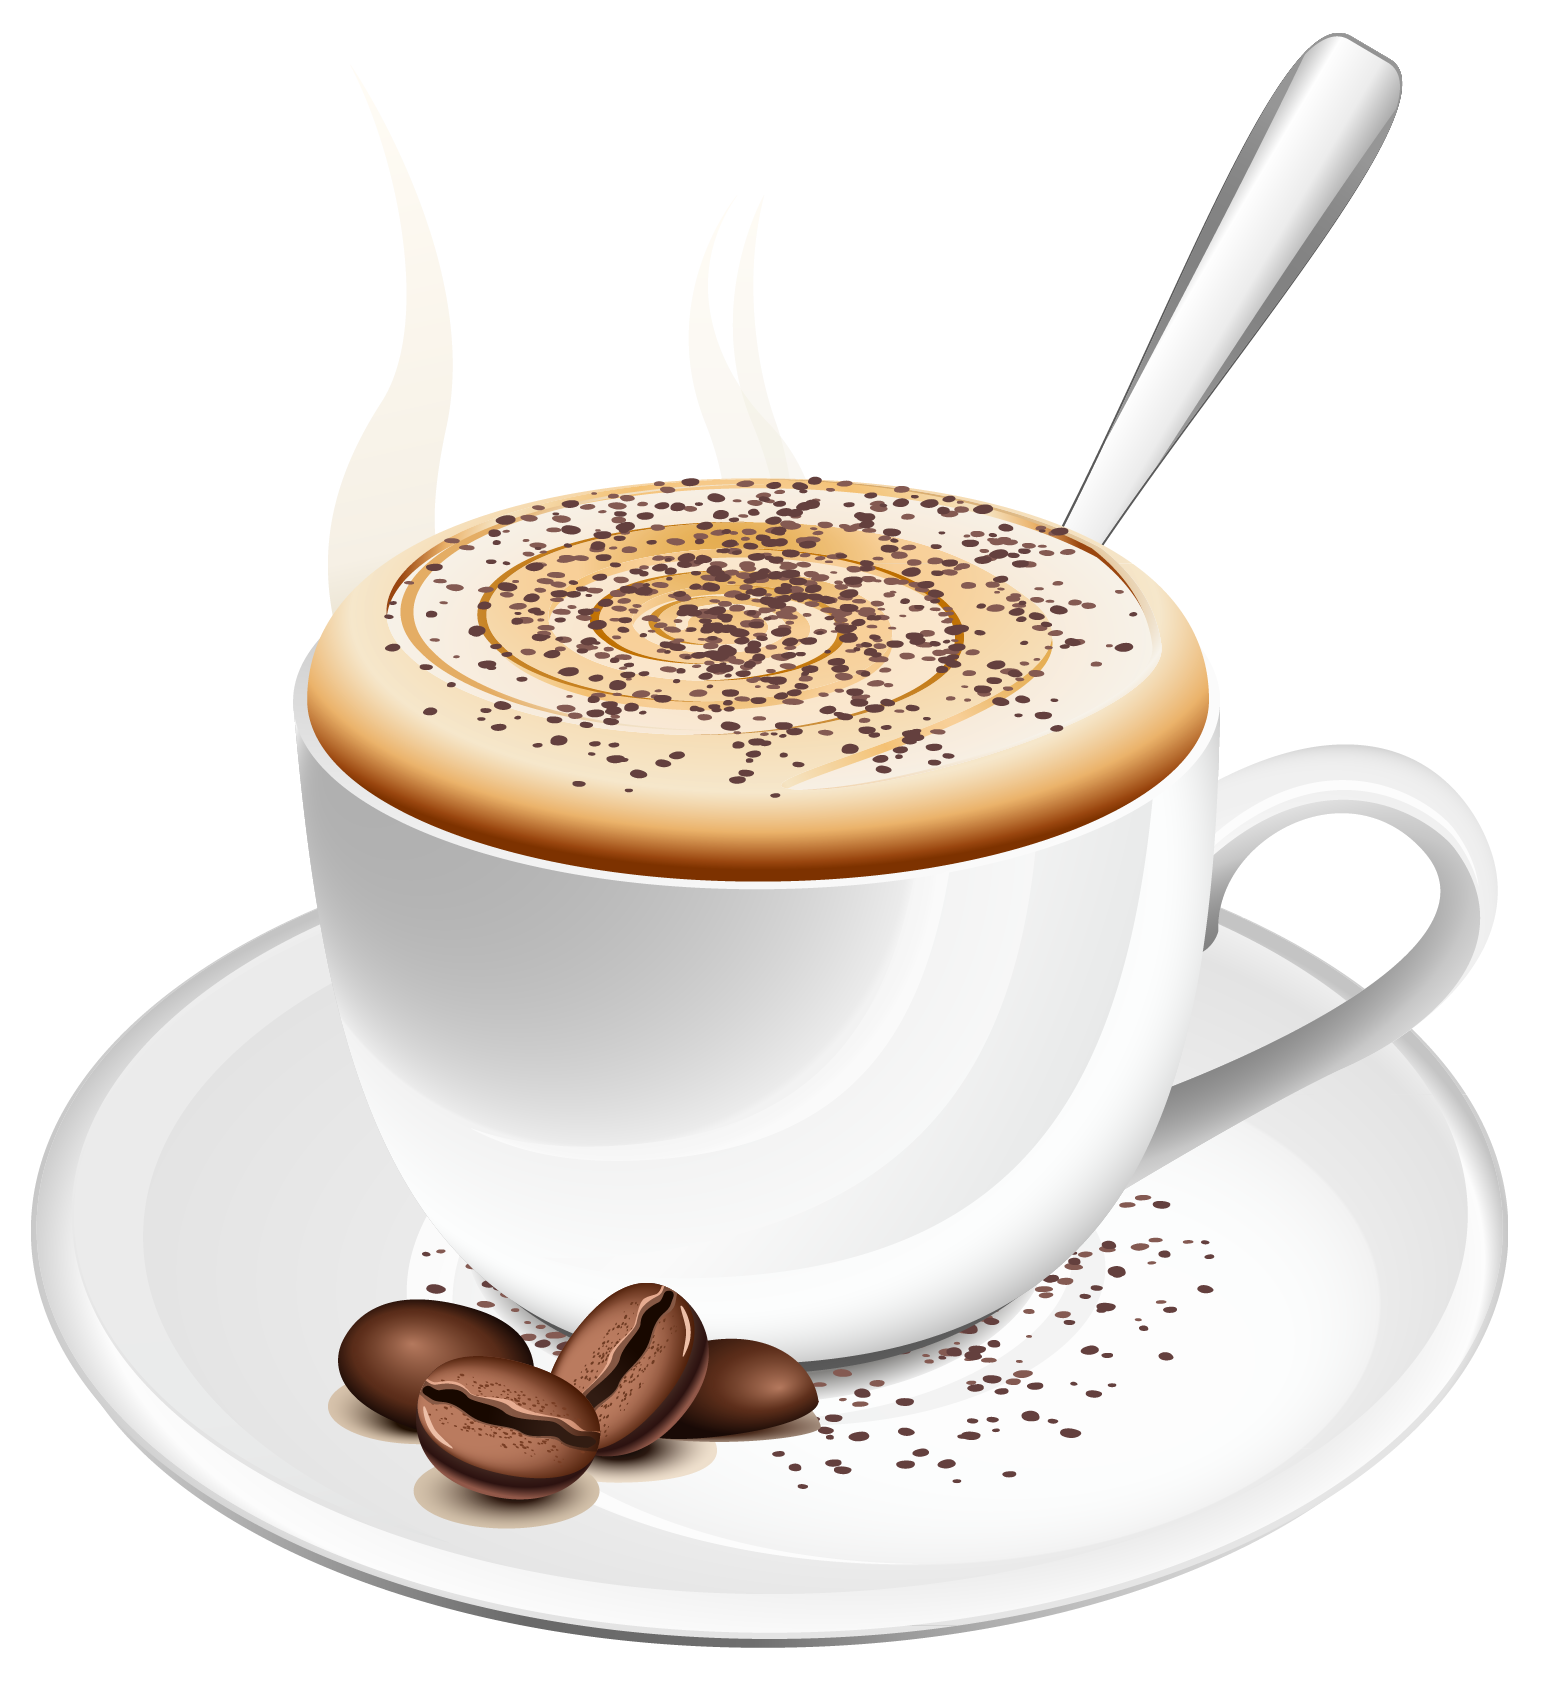 Pin by Carolyn White on Coffee Coffee clipart, Coffee